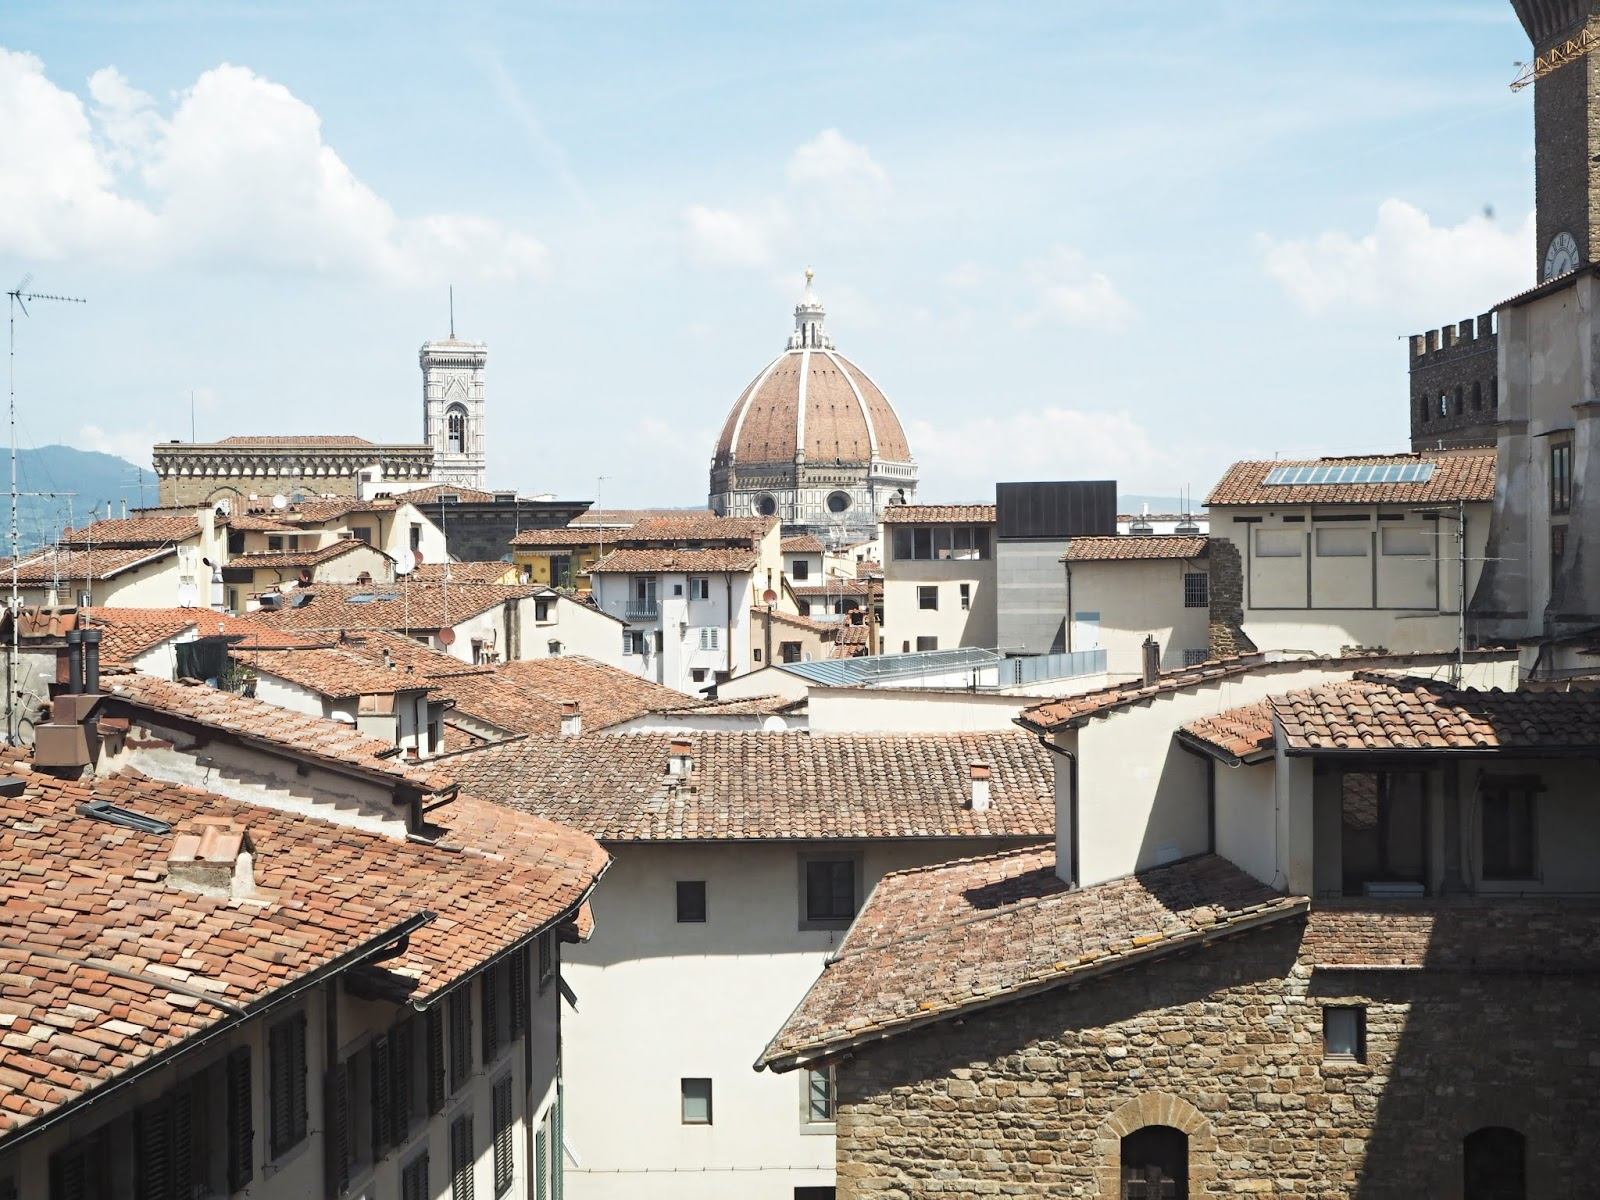 Florence skyline shot from uffizi gallery